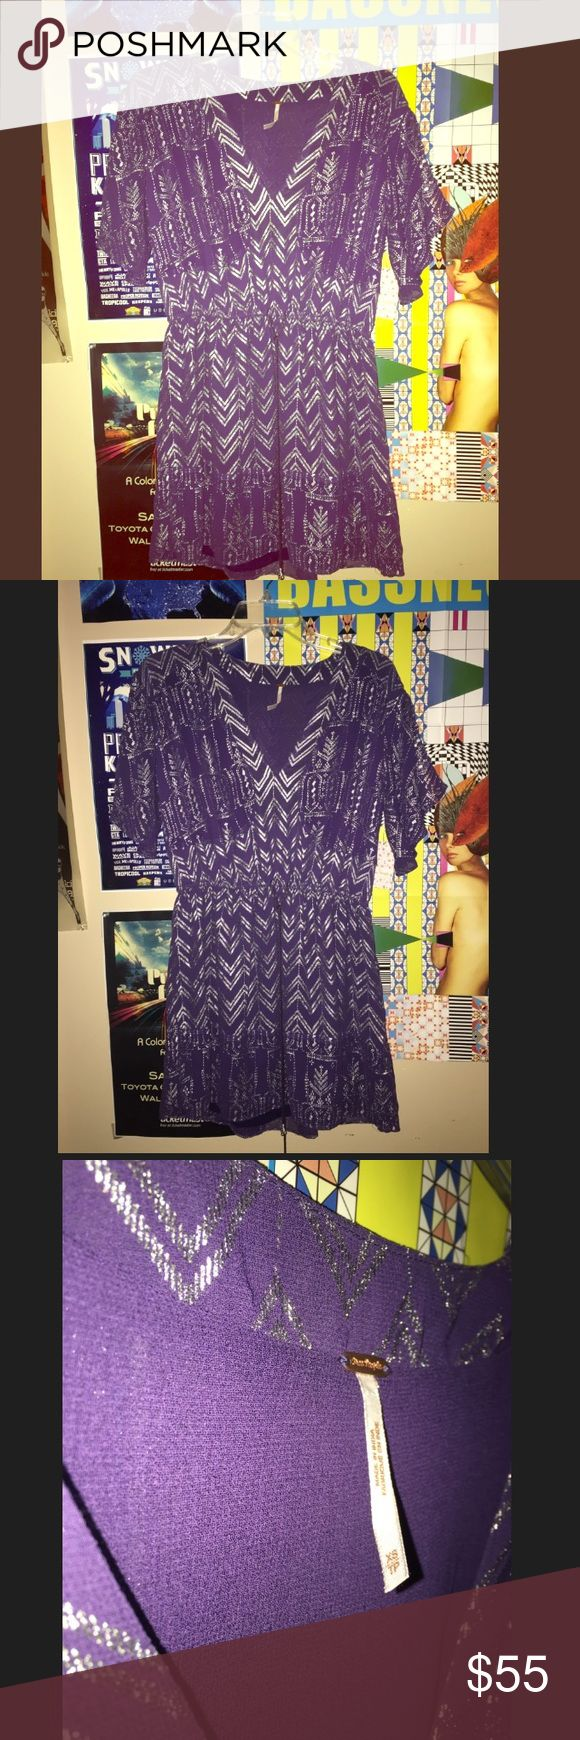 NWT Free people purple & silver summer dress free people flowy summer dress with a tie waist. Size xs. Brand new, never worn. With tags! Free People Dresses Mini